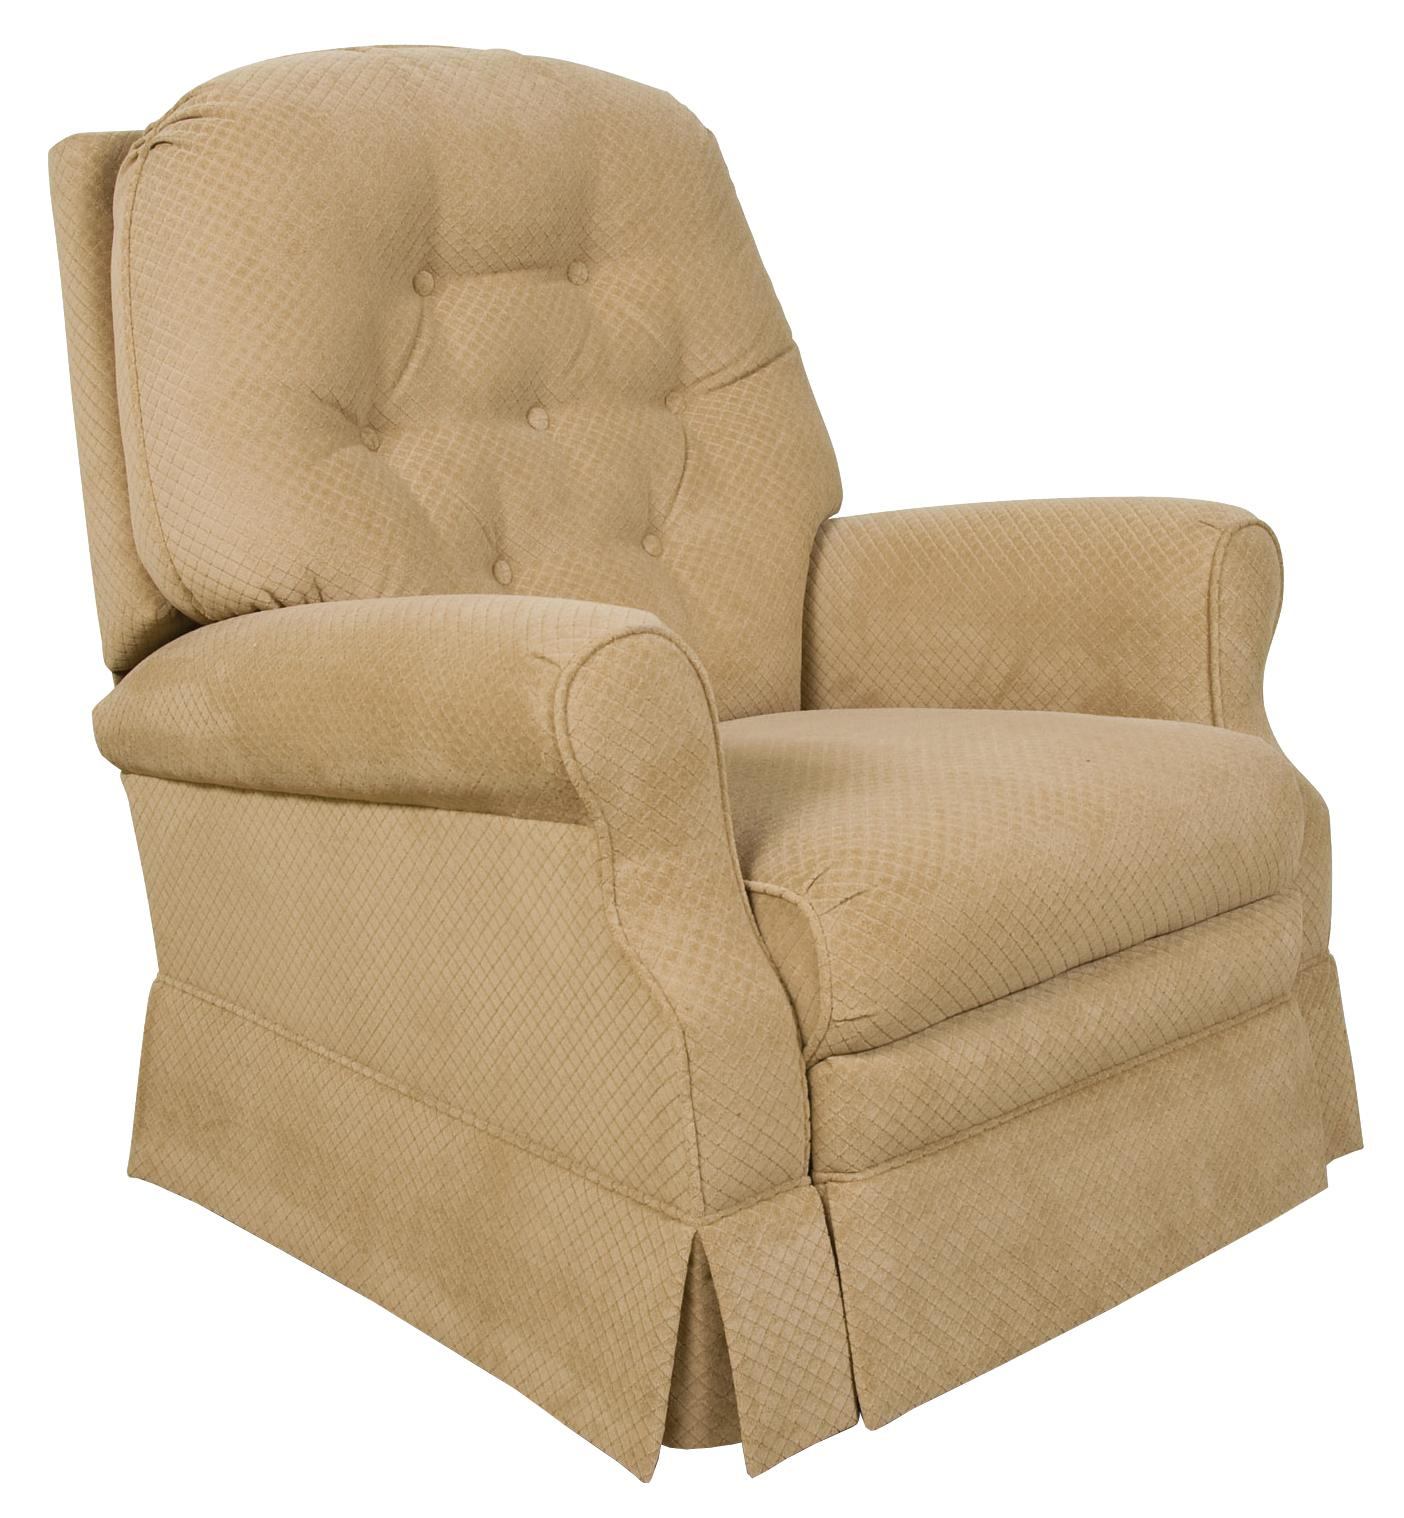 England Marisol 310 70 Swivel Gliding Recliner Furniture